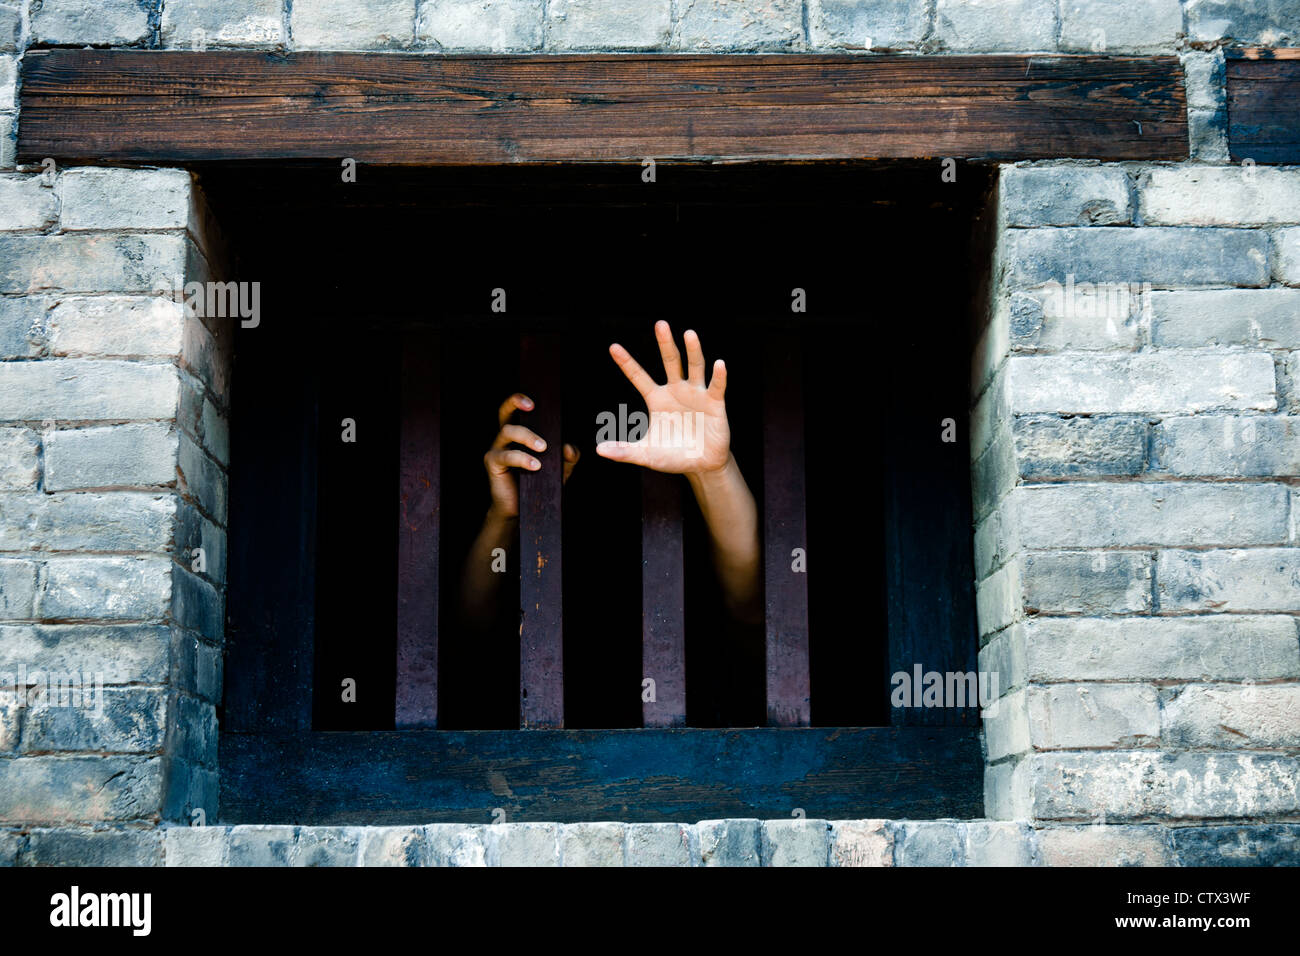 Prisoner hands stretch out from prison bars - Stock Image